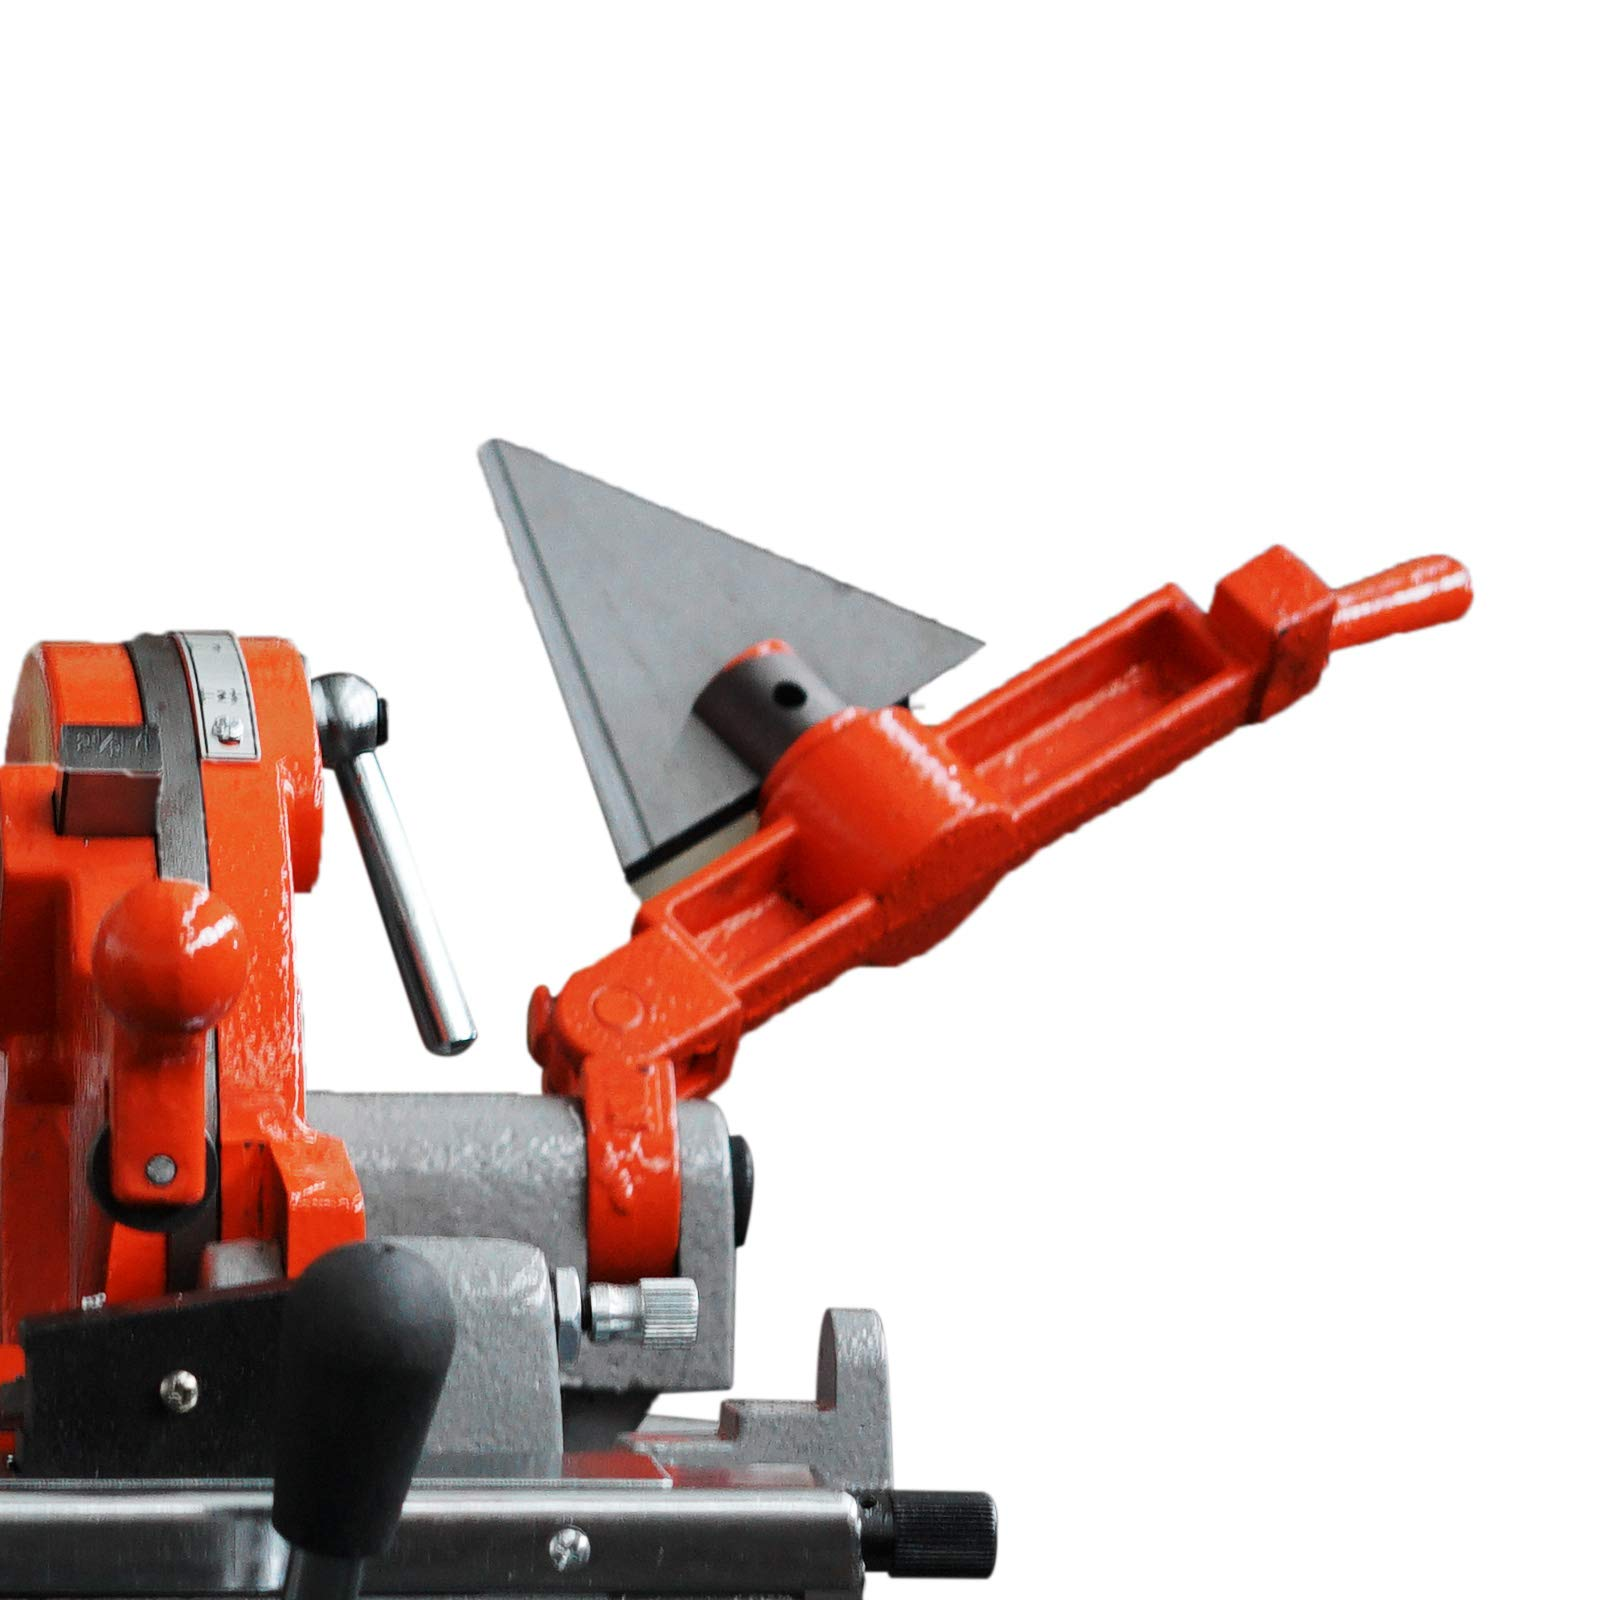 Mophorn Electric Pipe Threading Machine 1/2''-4'' Pipe Threading Cutter 750W Deburrer NPT P100 Upstanding by Mophorn (Image #5)